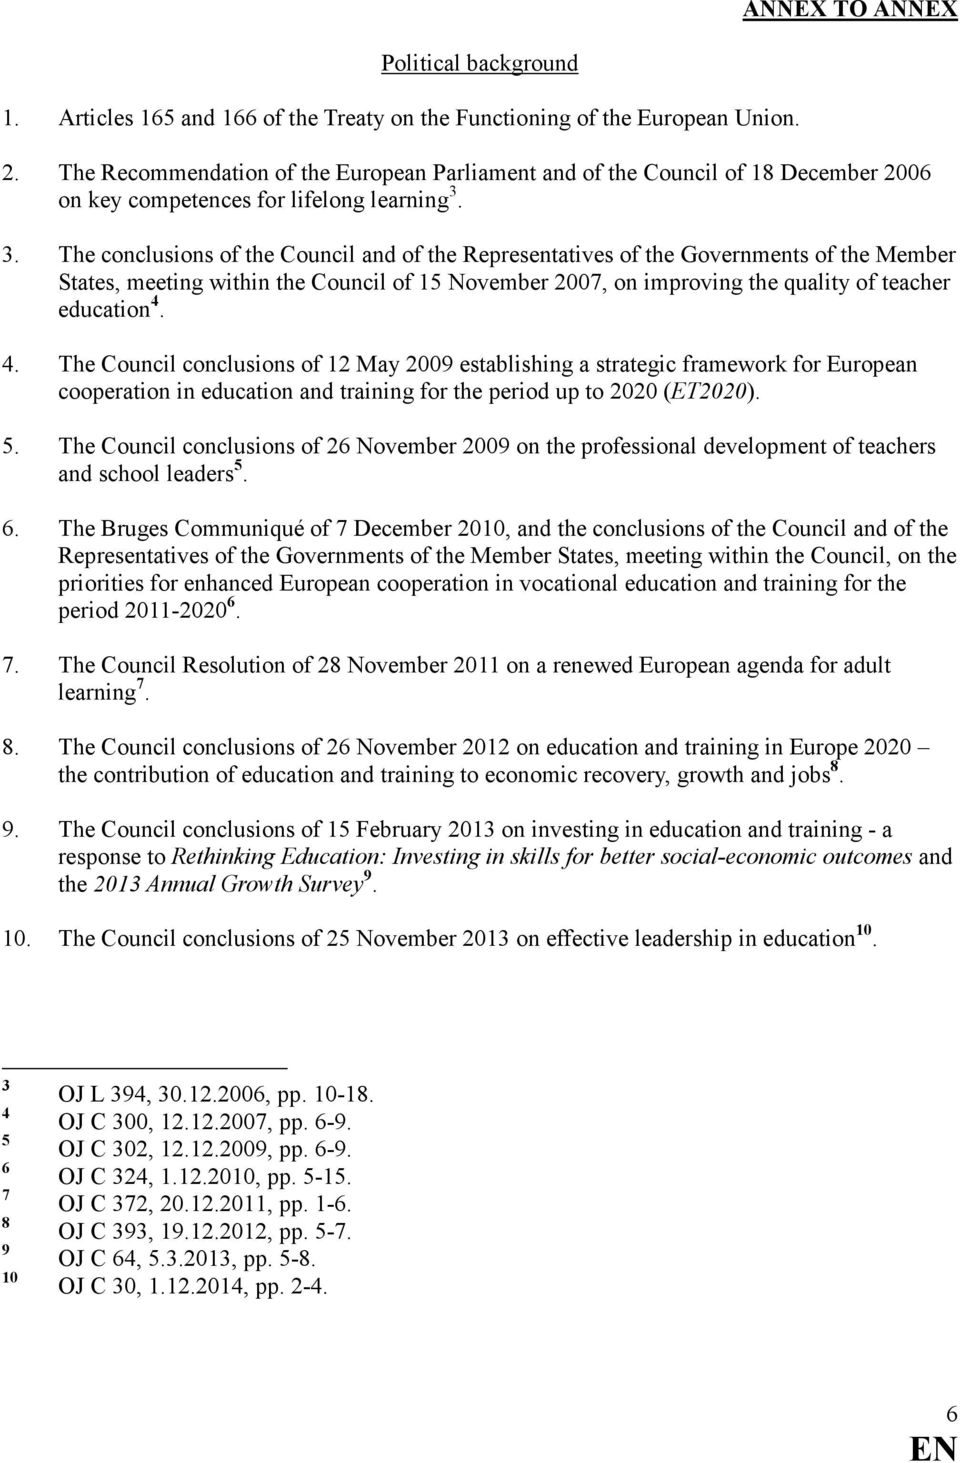 3. The conclusions of the Council and of the Representatives of the Governments of the Member States, meeting within the Council of 15 November 2007, on improving the quality of teacher education 4.